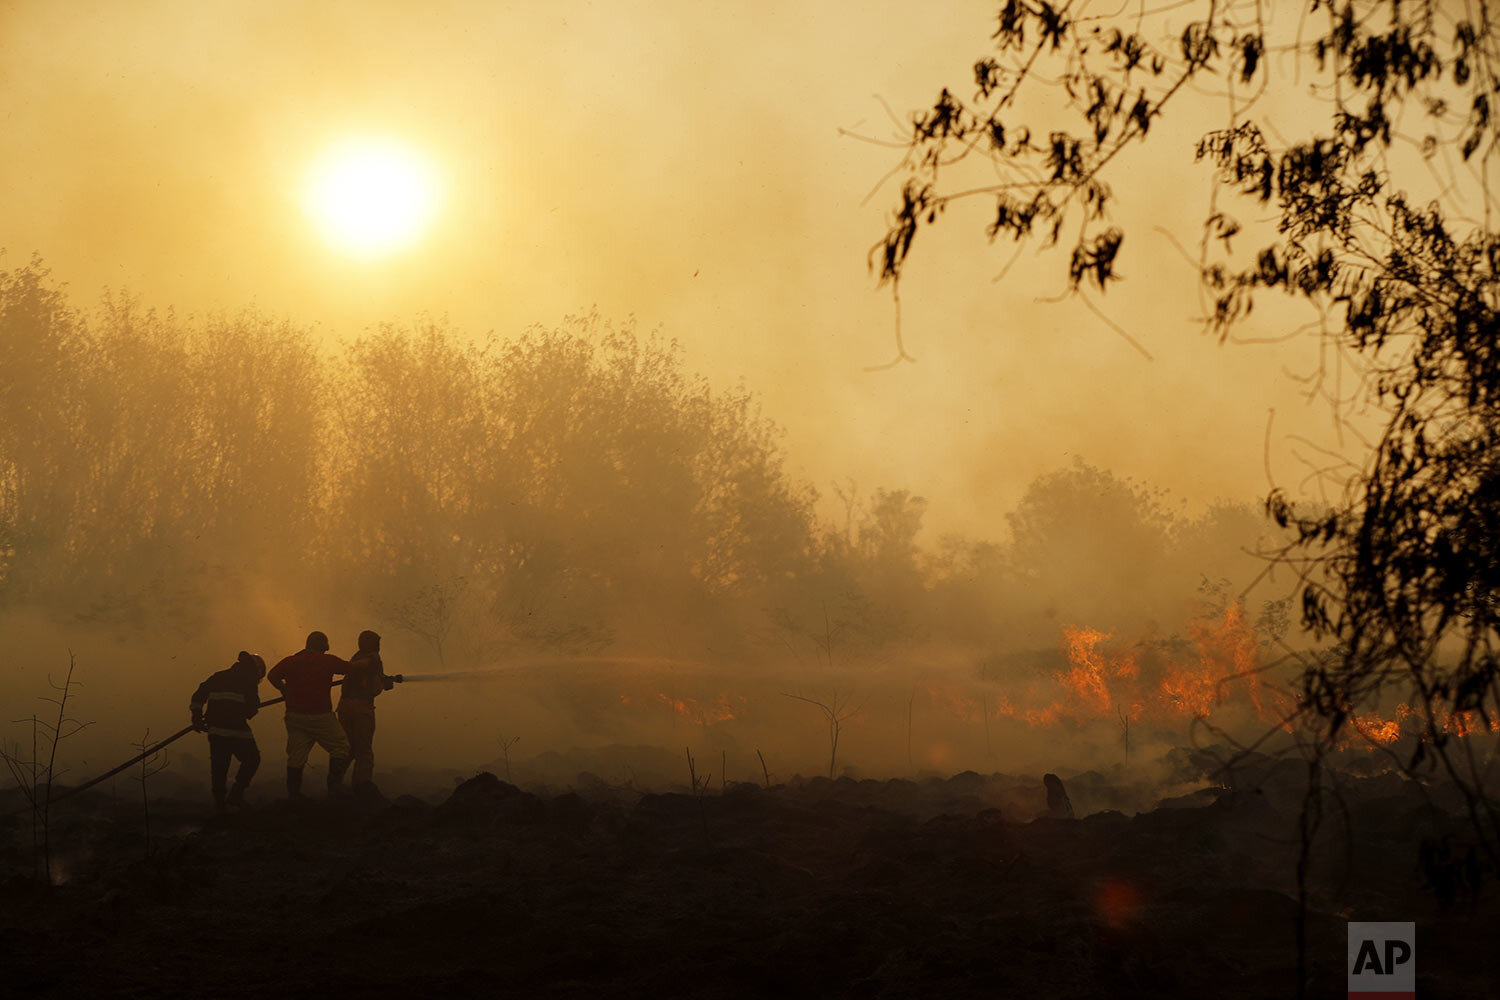 Firefighters from the city of Luque spray water on a fire in Guazu National Park on the outskirts of Asuncion, Paraguay, Tuesday, Oct. 1, 2019. More than 300,000 hectares of subtropical forest have burned since July across Paraguay due to the illegal burning of grasslands for agricultural planting, according to the National Security Ministry. (AP Photo/Jorge Saenz)